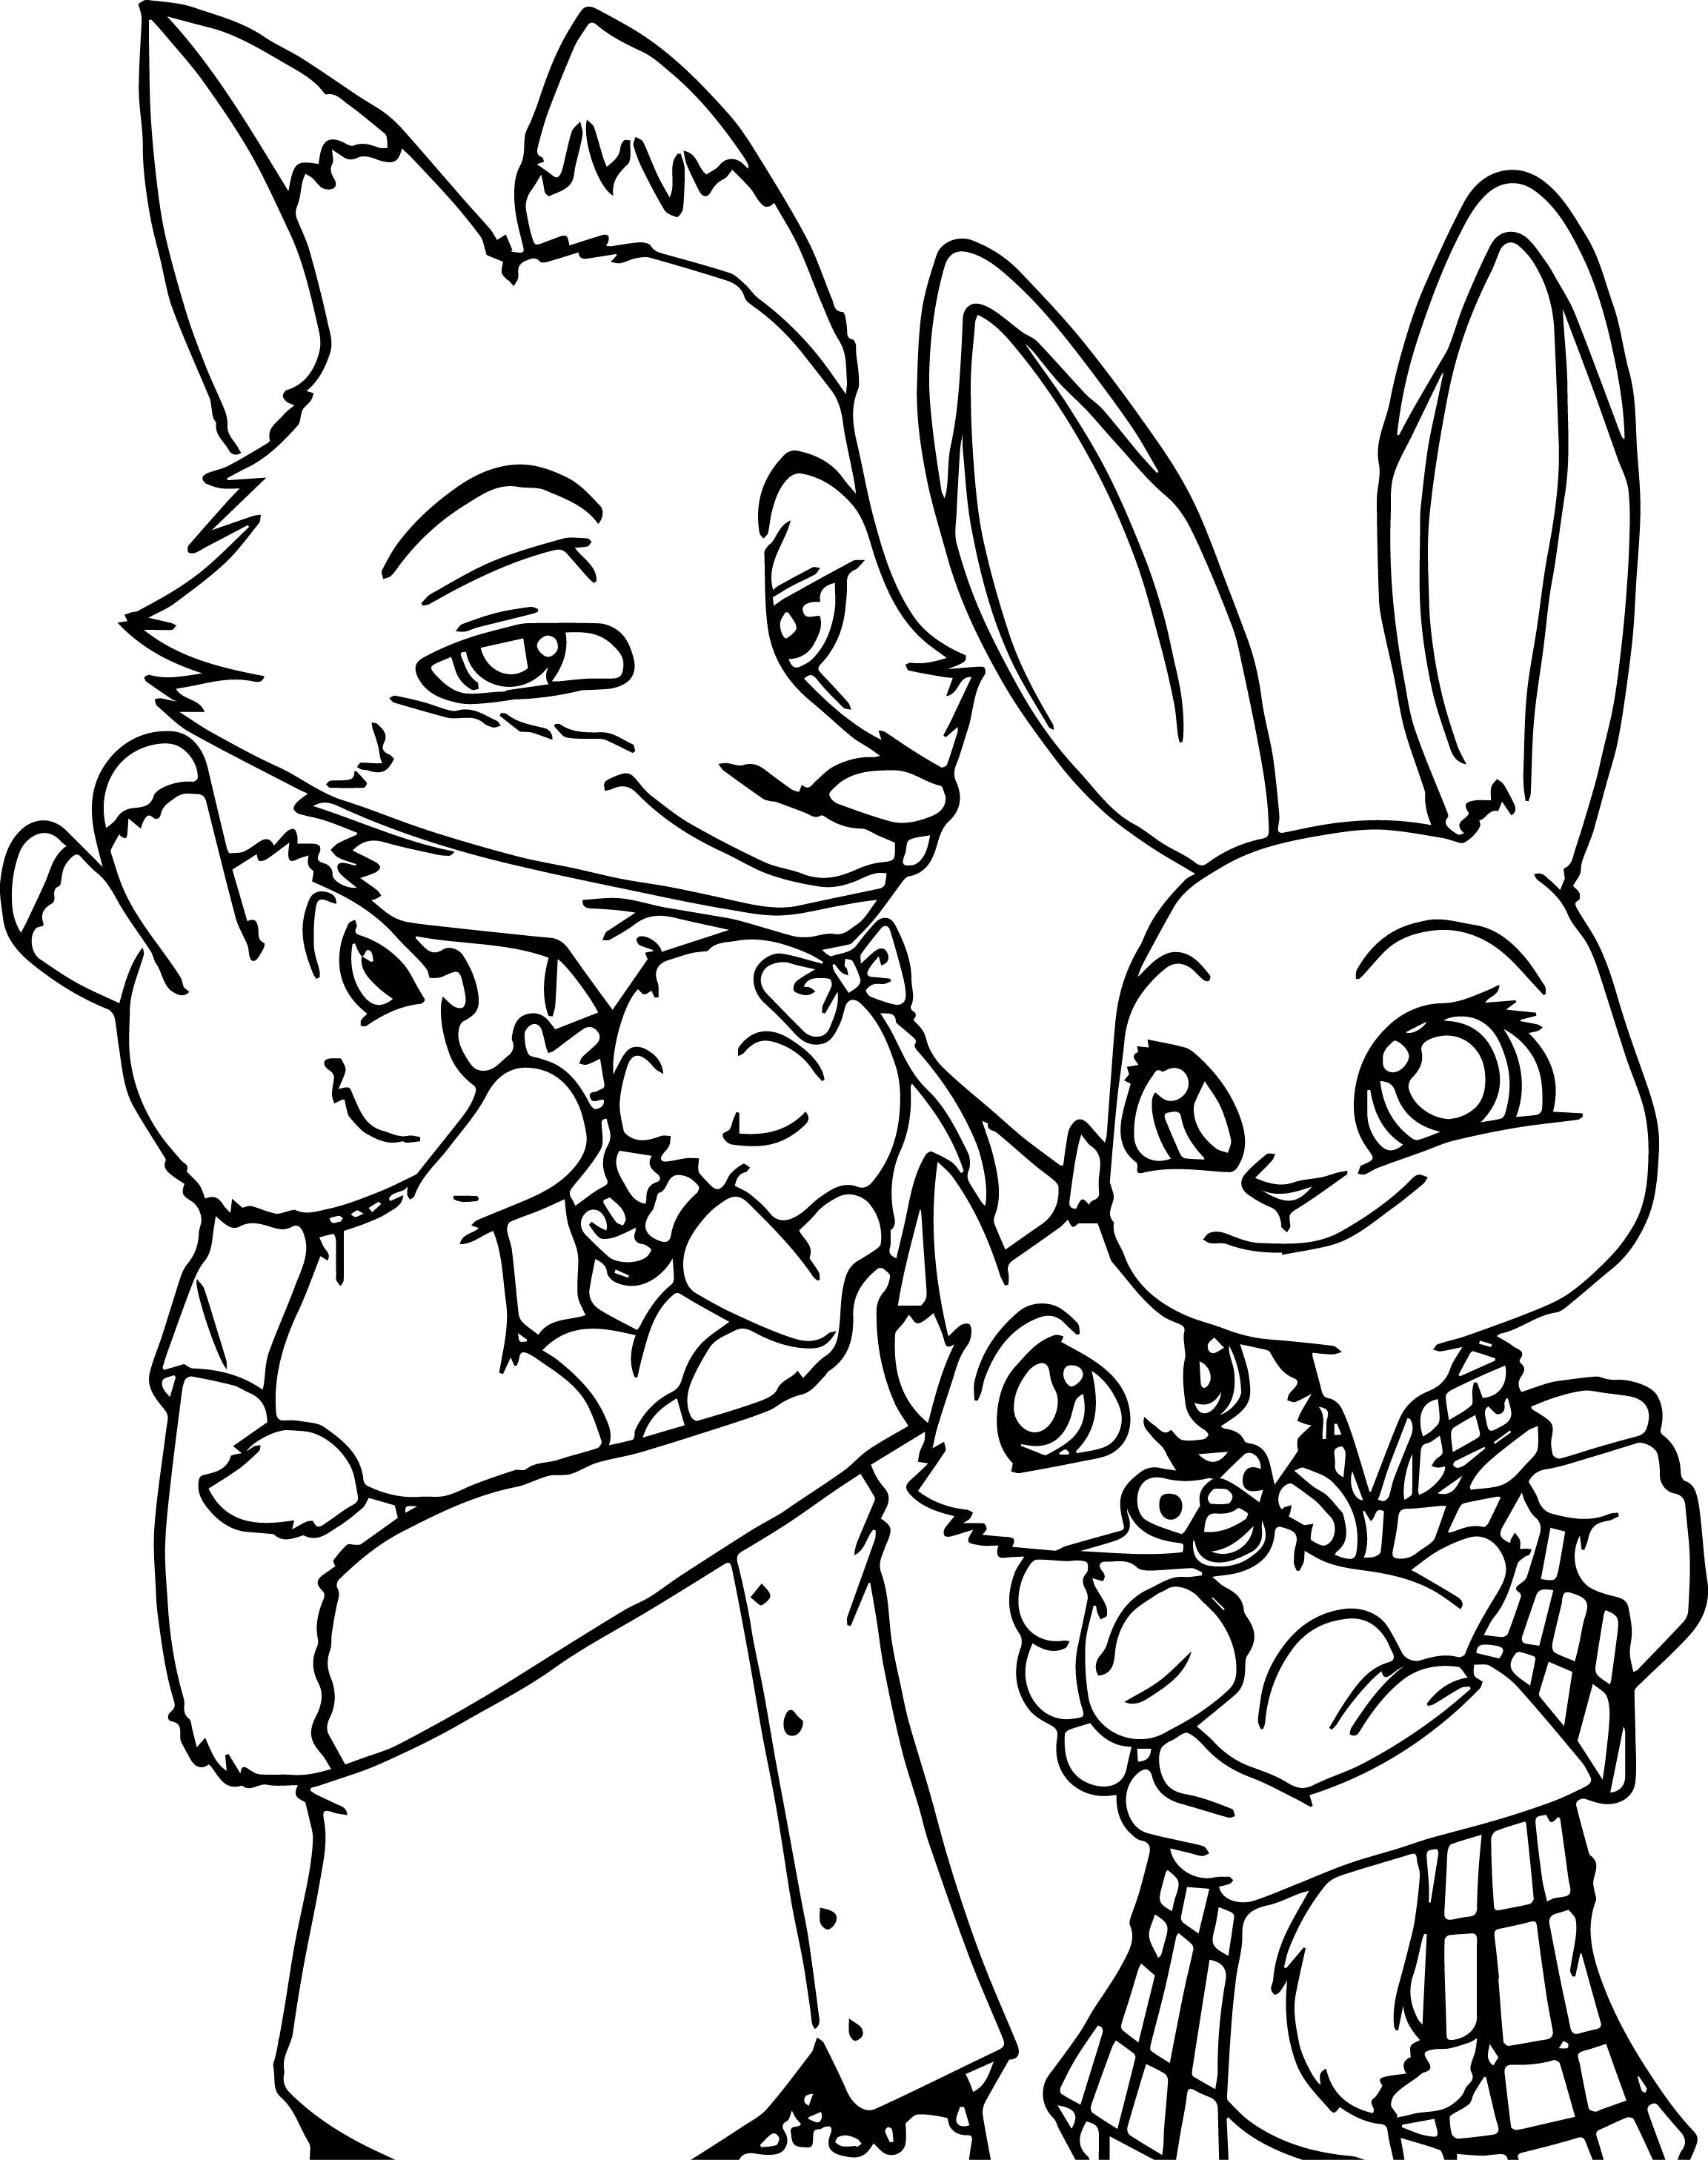 Zootopia Bunny And Fox Family Coloring Page Family Coloring Pages Zootopia Coloring Pages Mandala Coloring Pages